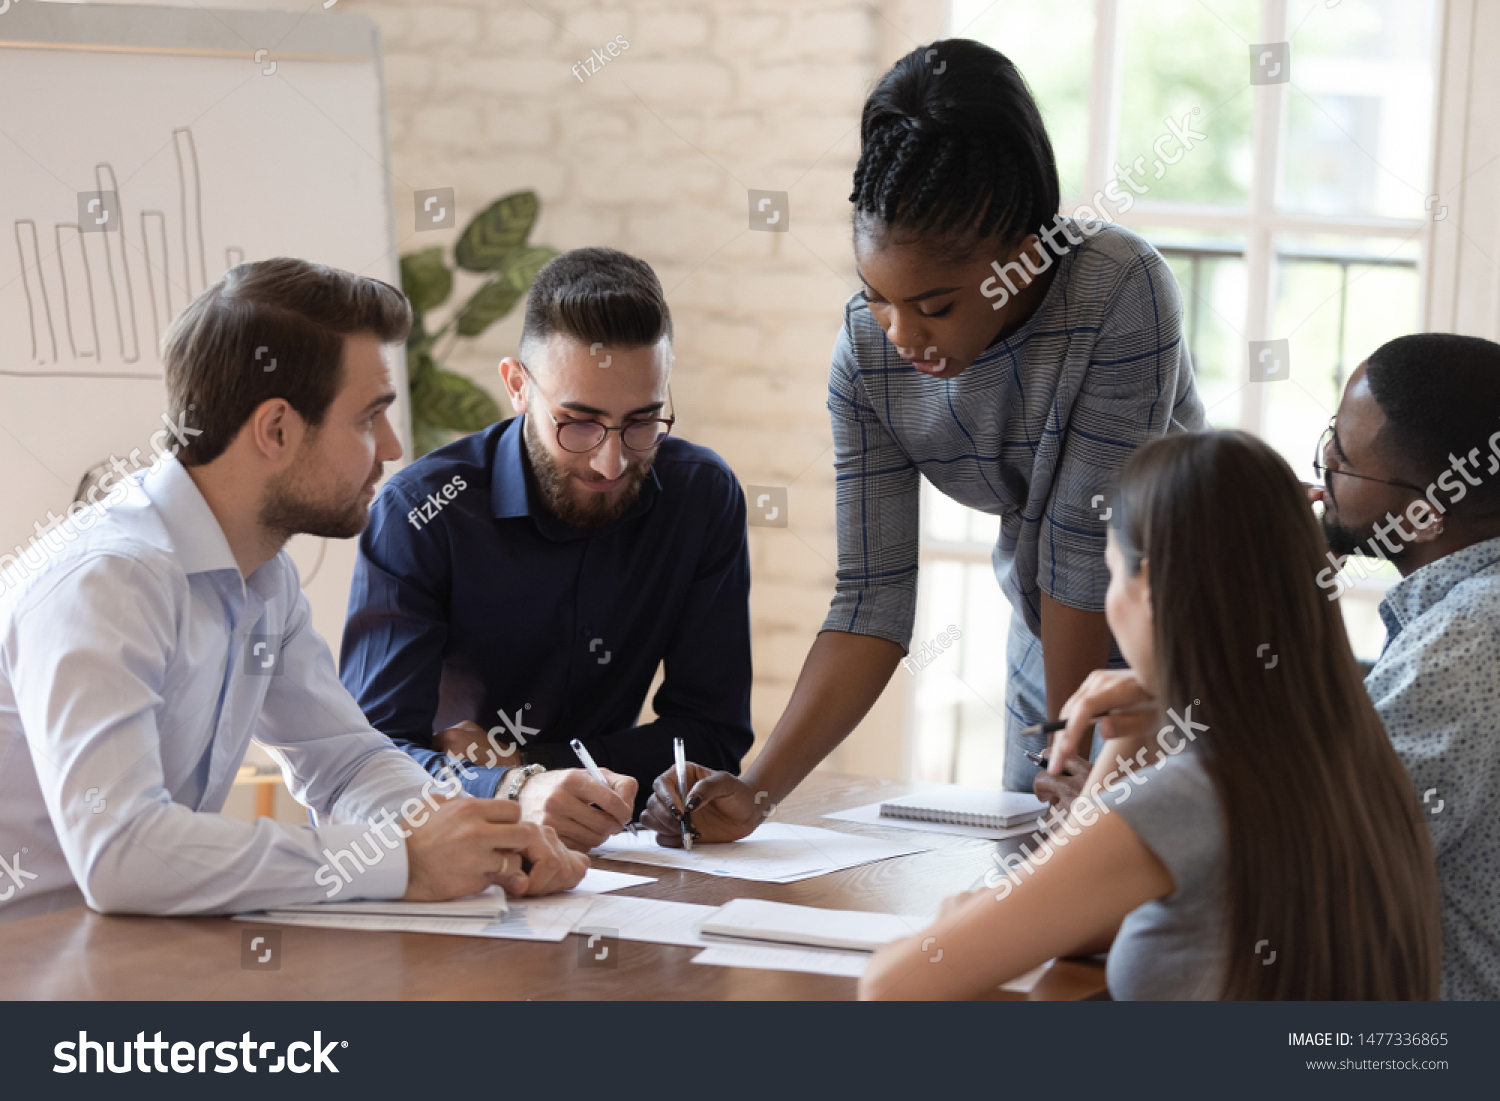 Serious african woman supervisor boss teach diverse staff workers explain project plan paperwork at group meeting, focused black female mentor training business team at corporate office briefing #1477336865